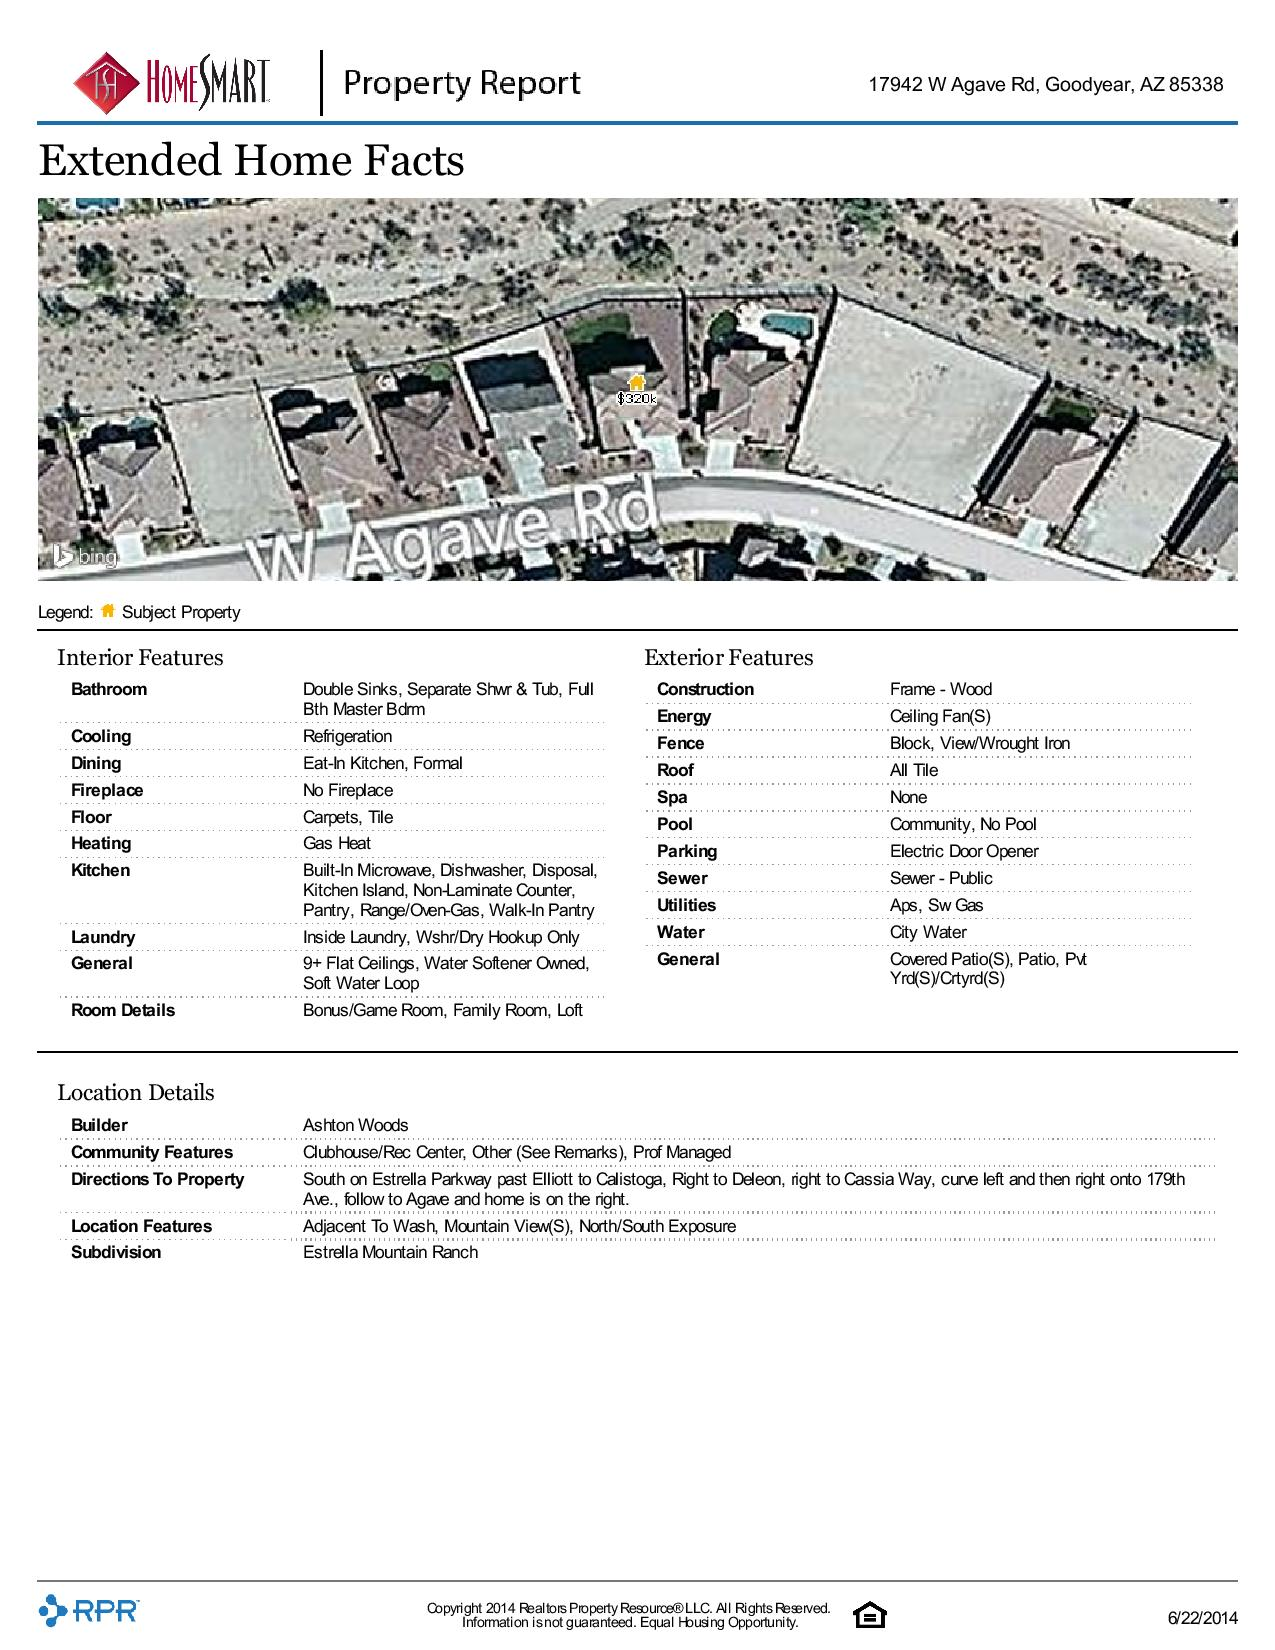 17942-W-Agave-Rd-Goodyear-AZ-85338-page-004